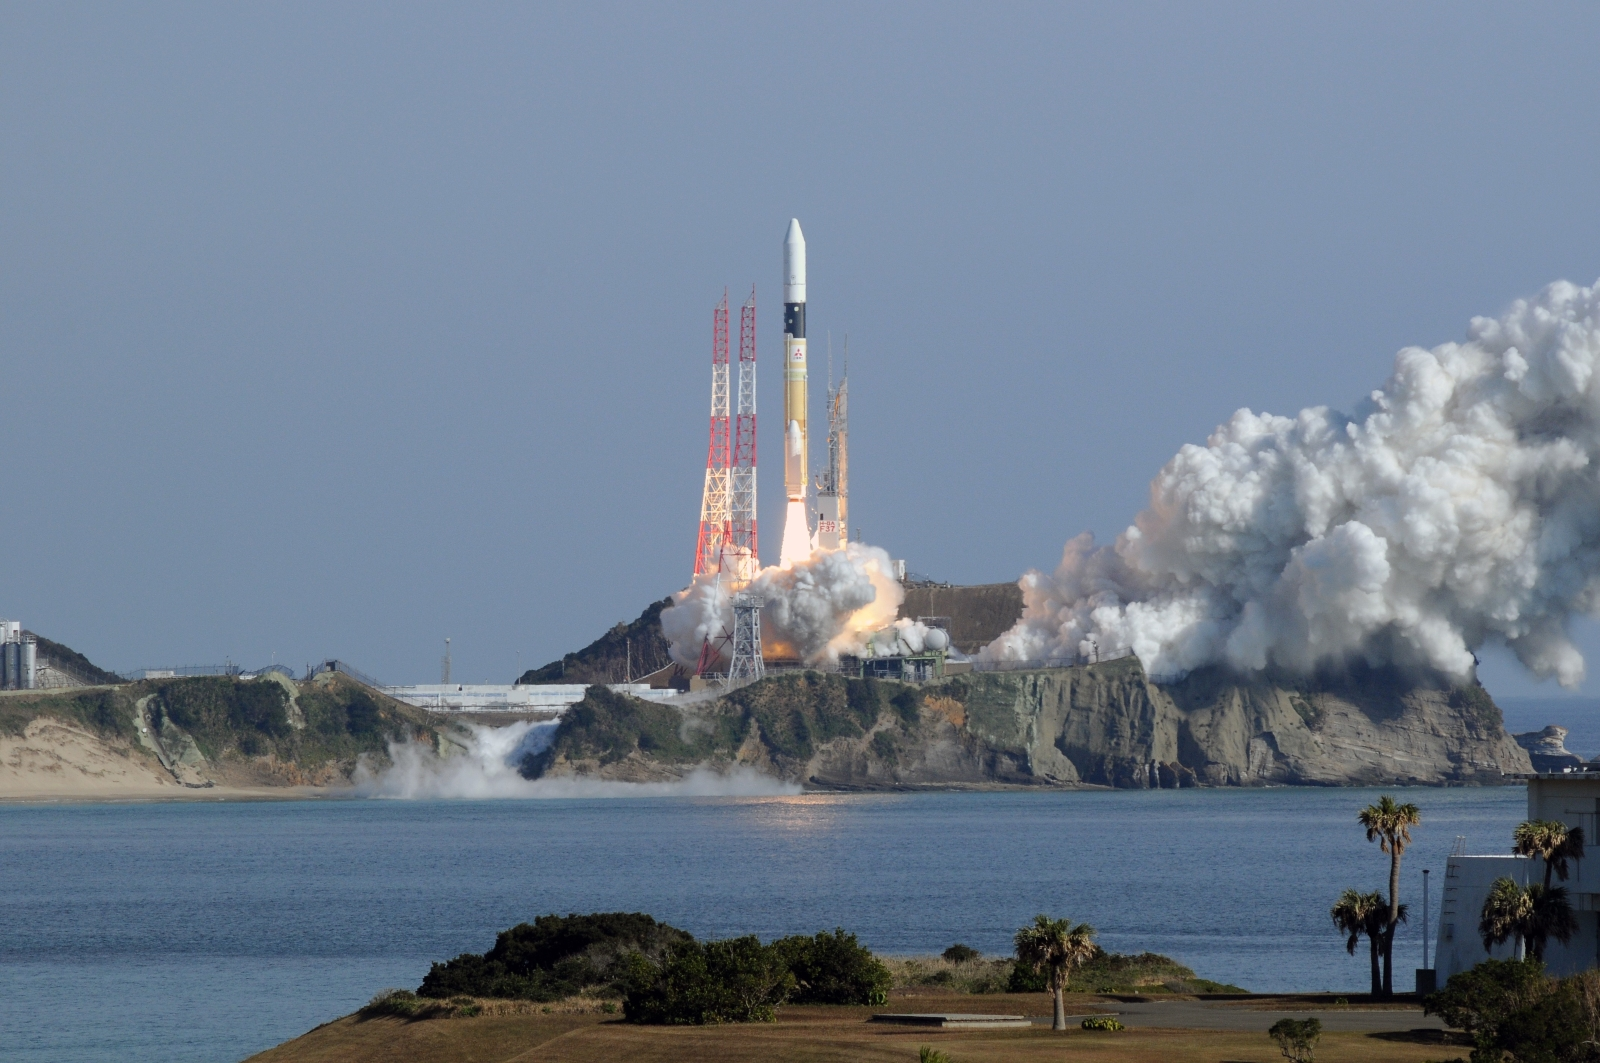 Japan launches joint military, scientific optical data relay satellite